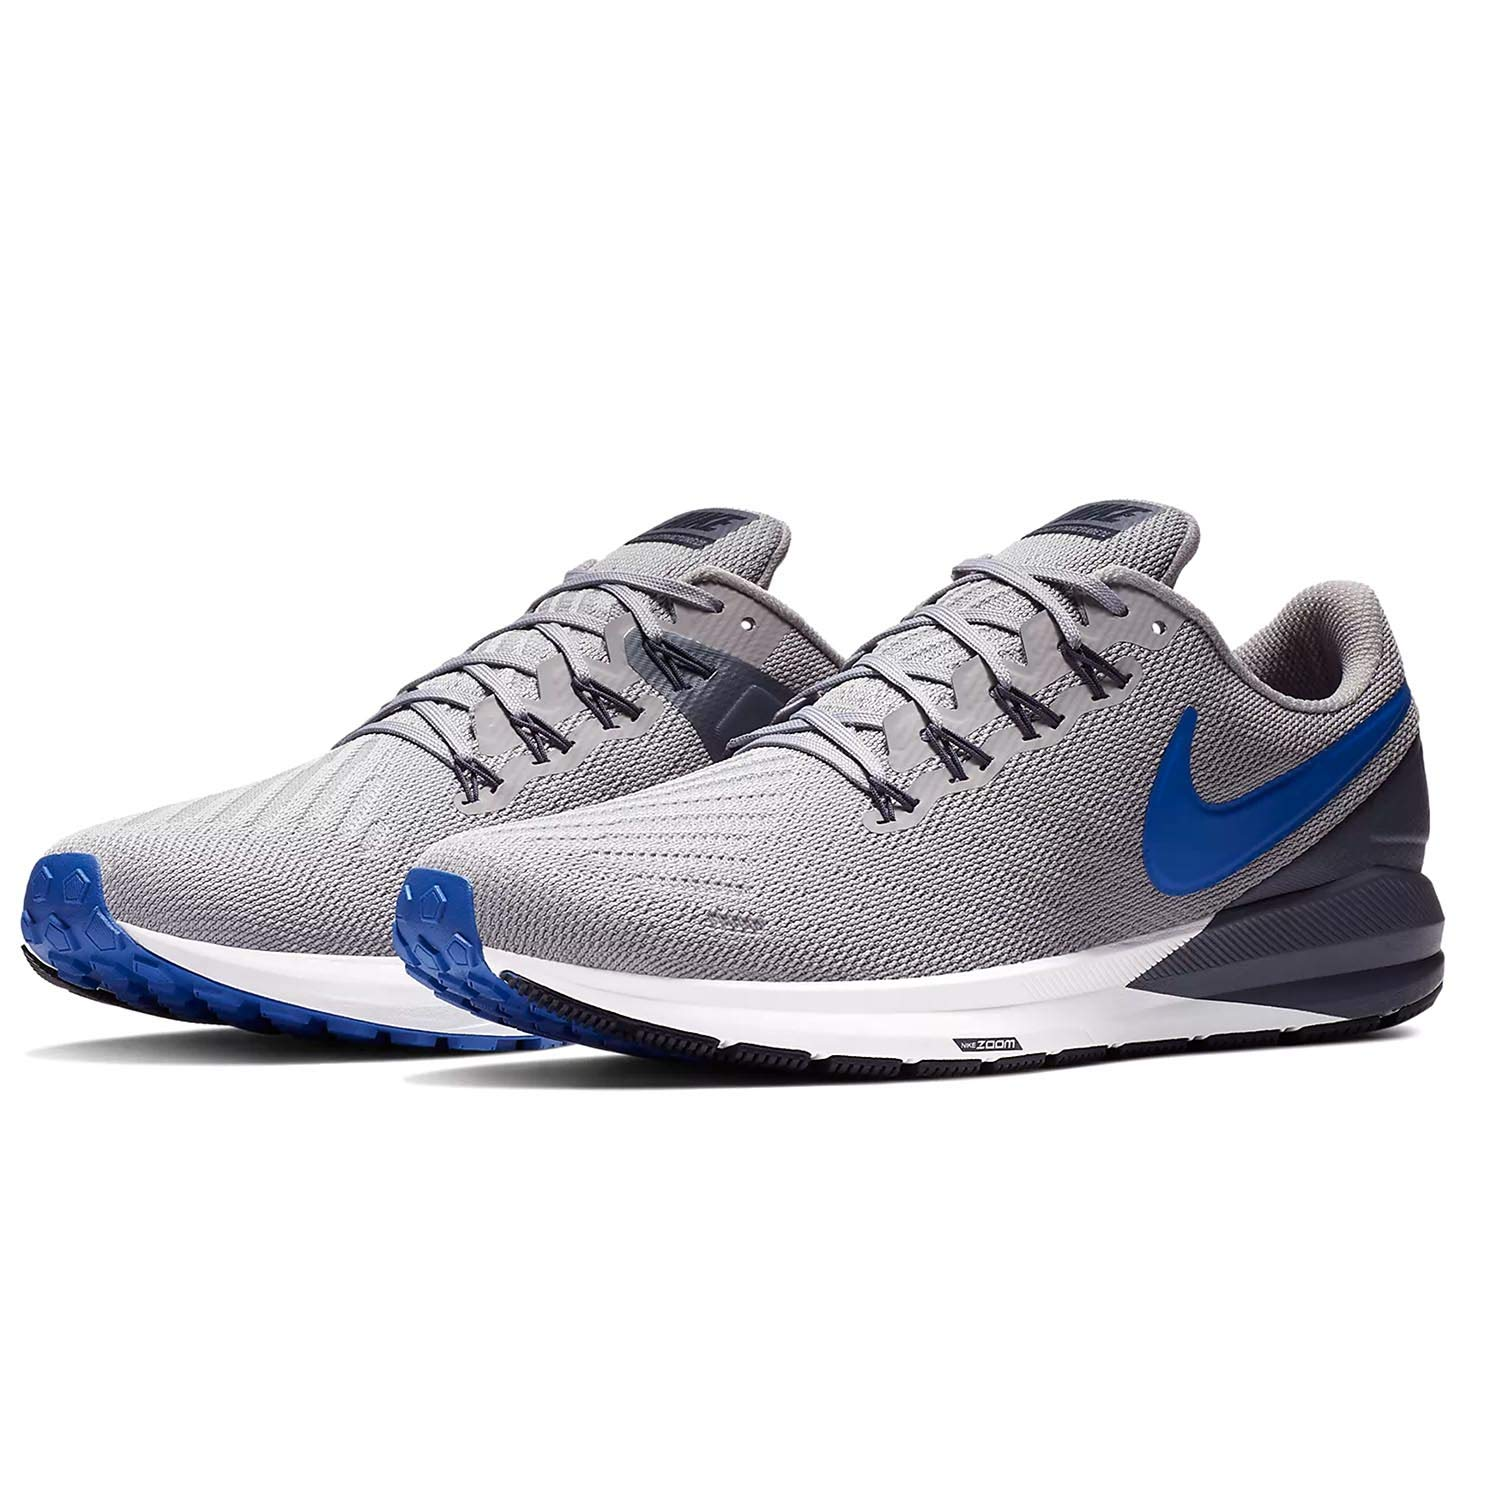 MultiCouleure (Atmosphere gris Hyper Royal Light Carbon 003) Nike Air Zoom Structure 22, Chaussures de Running Compétition Homme 39 EU